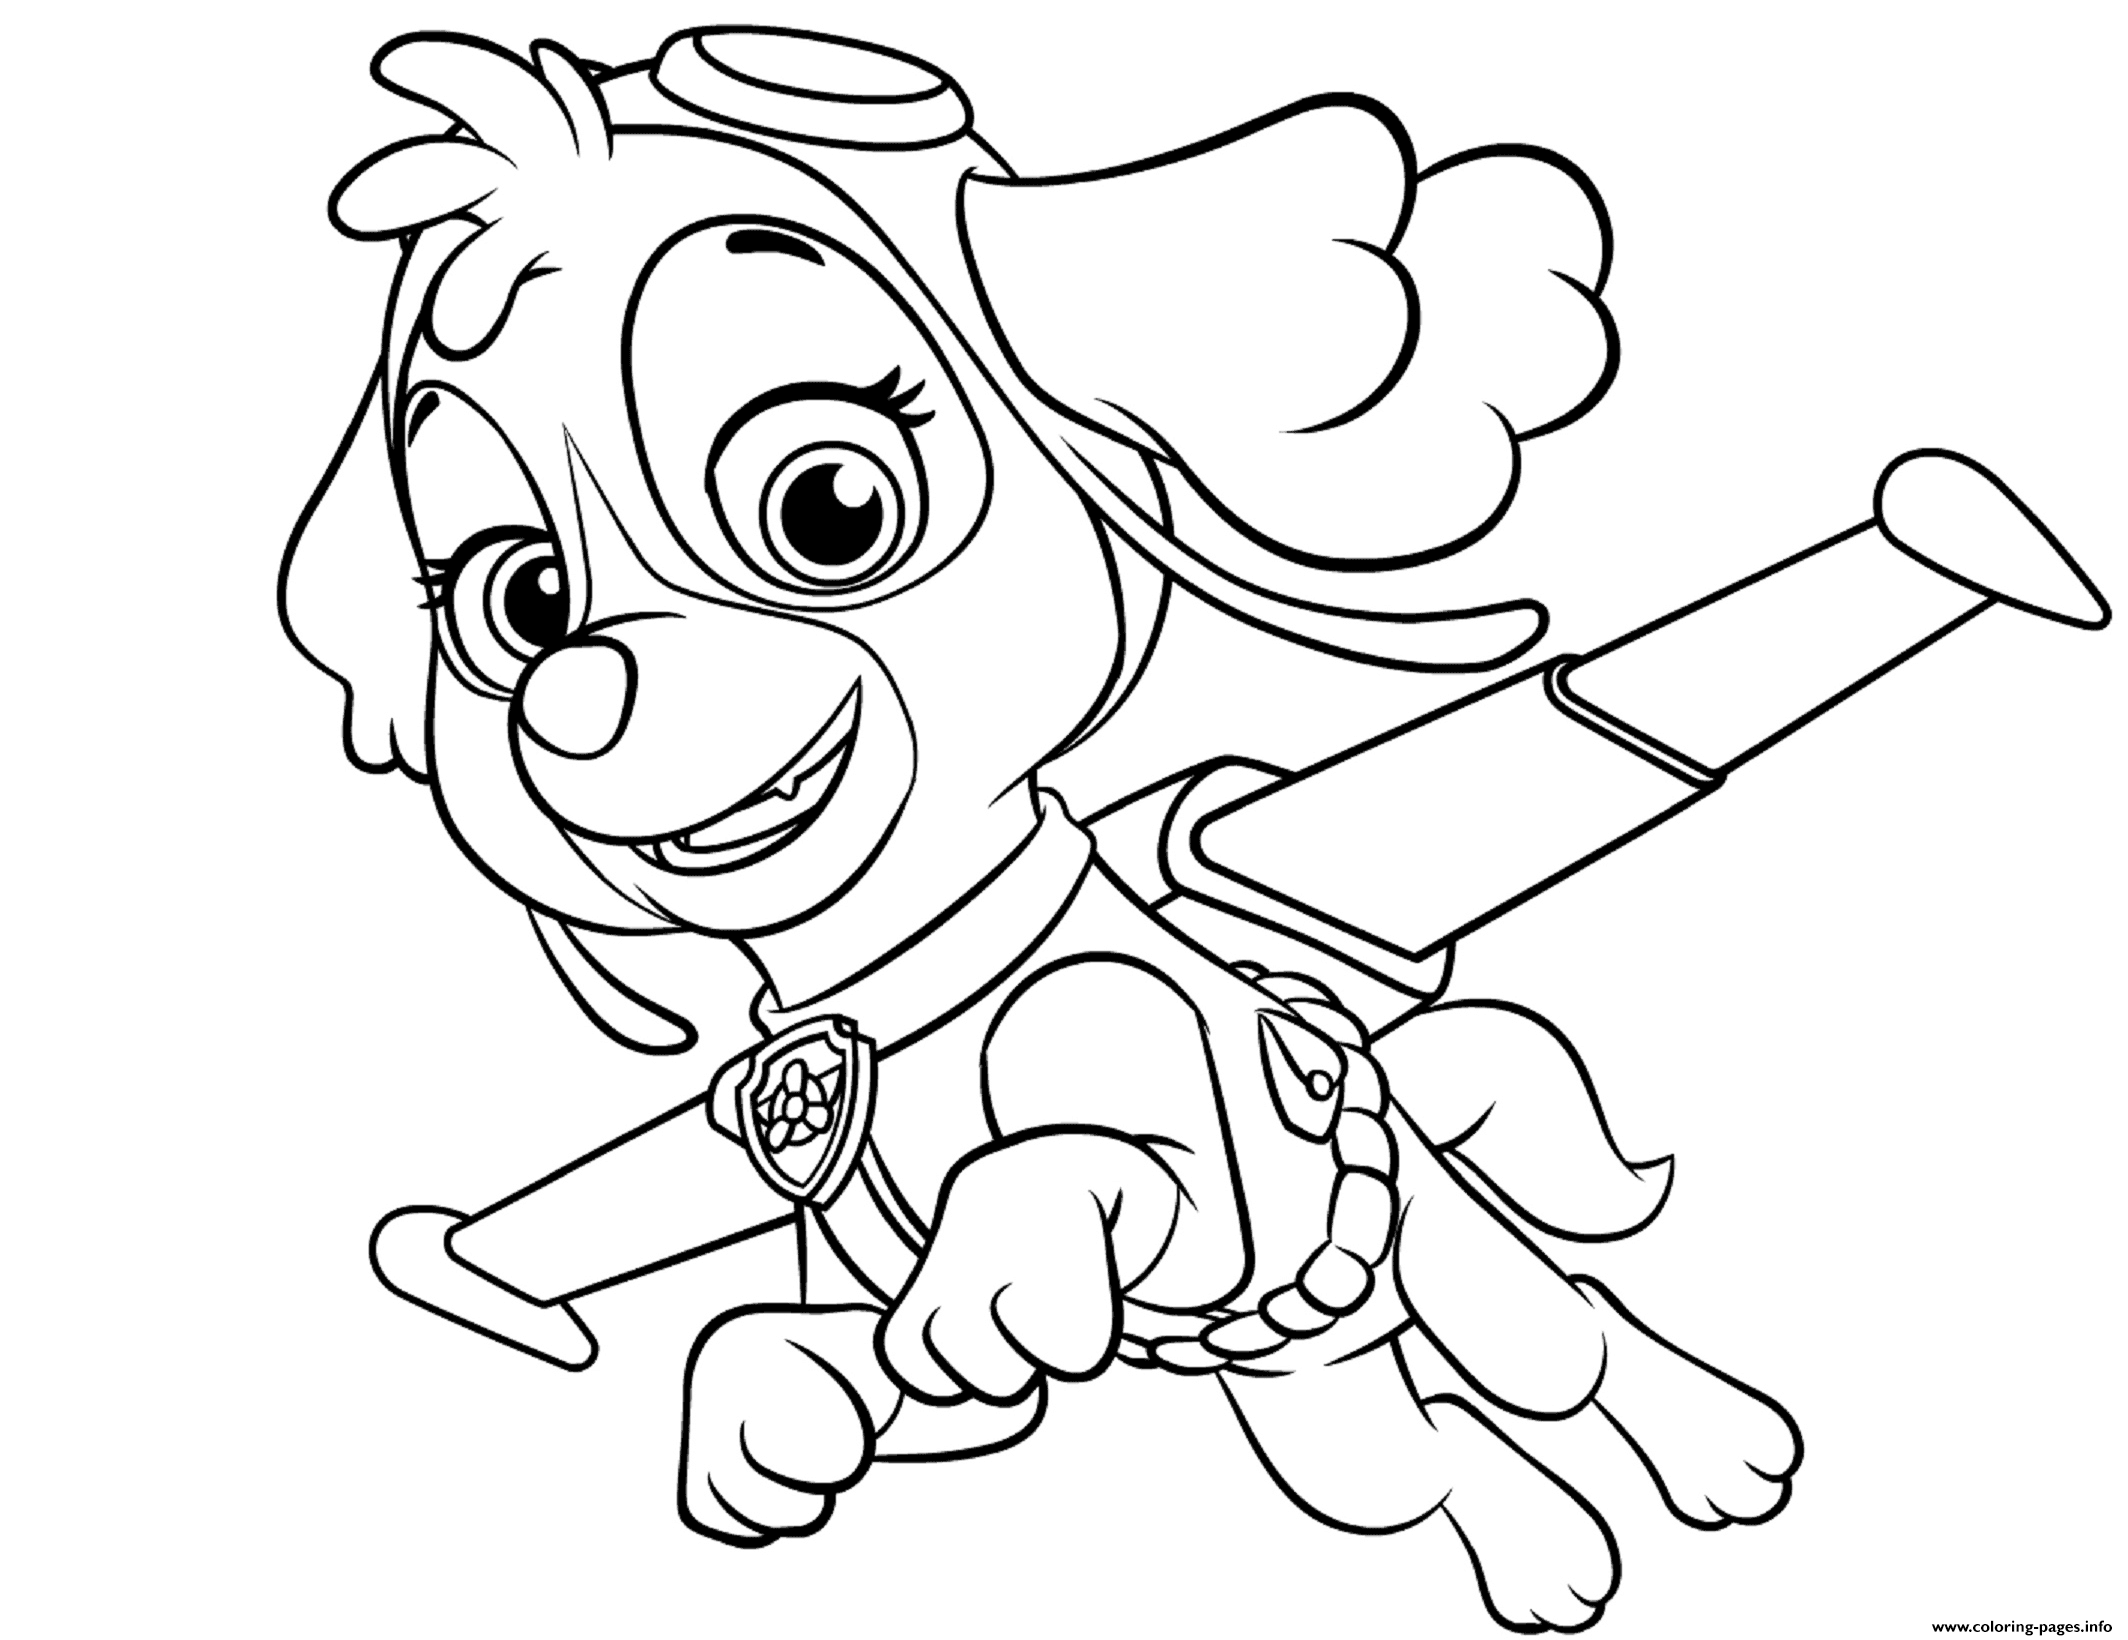 Print Skye Flying Paw Patrol Coloring Pages Paw Patrol Coloring Pages Paw Patrol Coloring Skye Paw Patrol